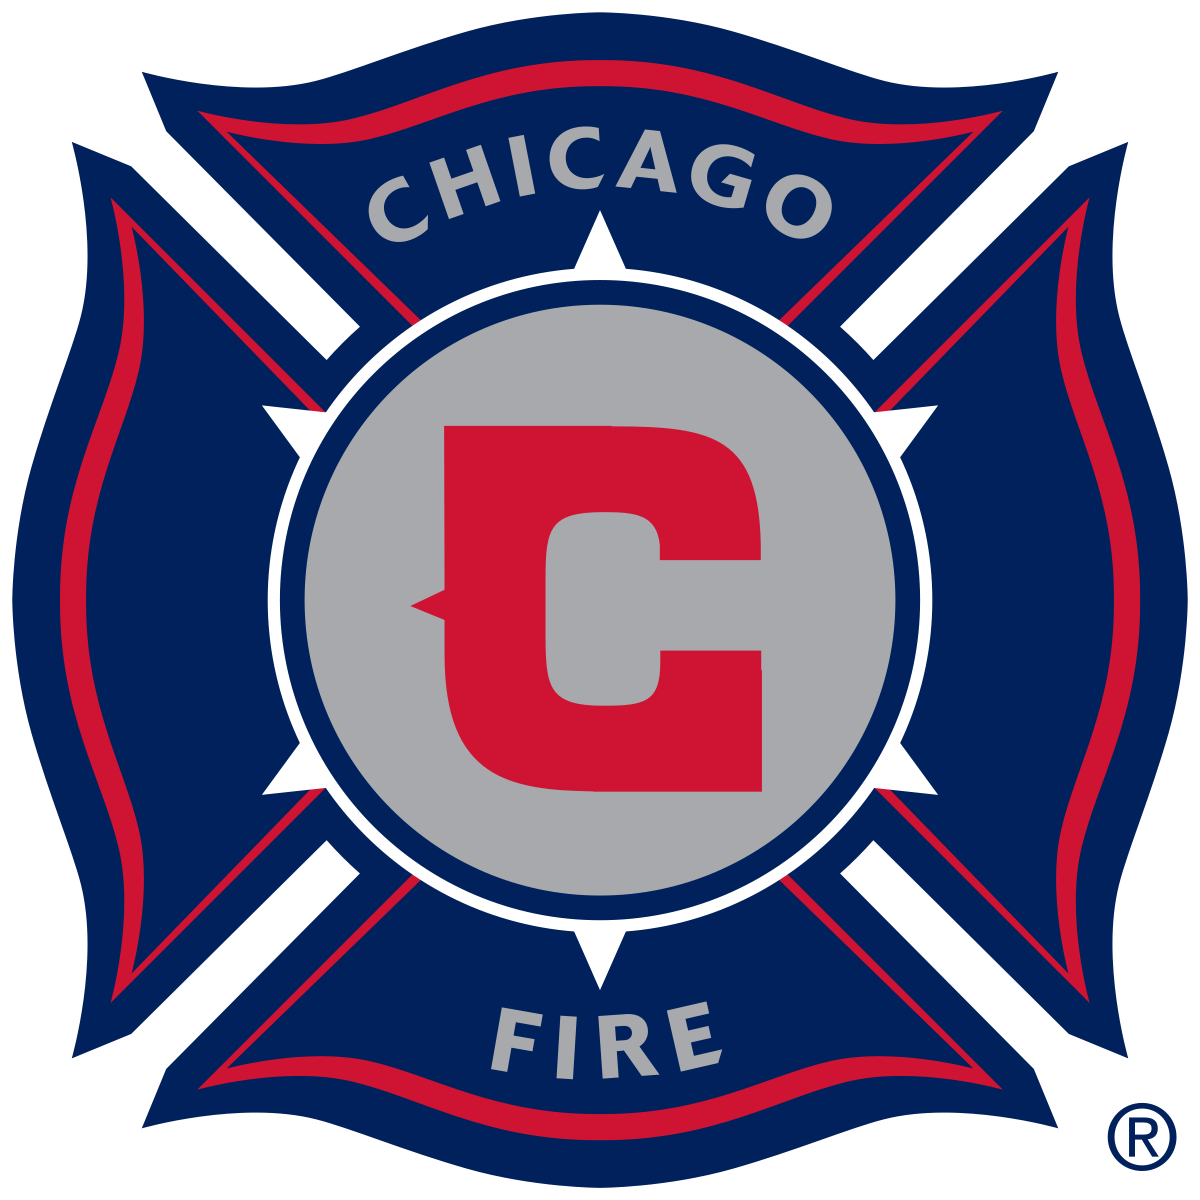 chicago fire logo png